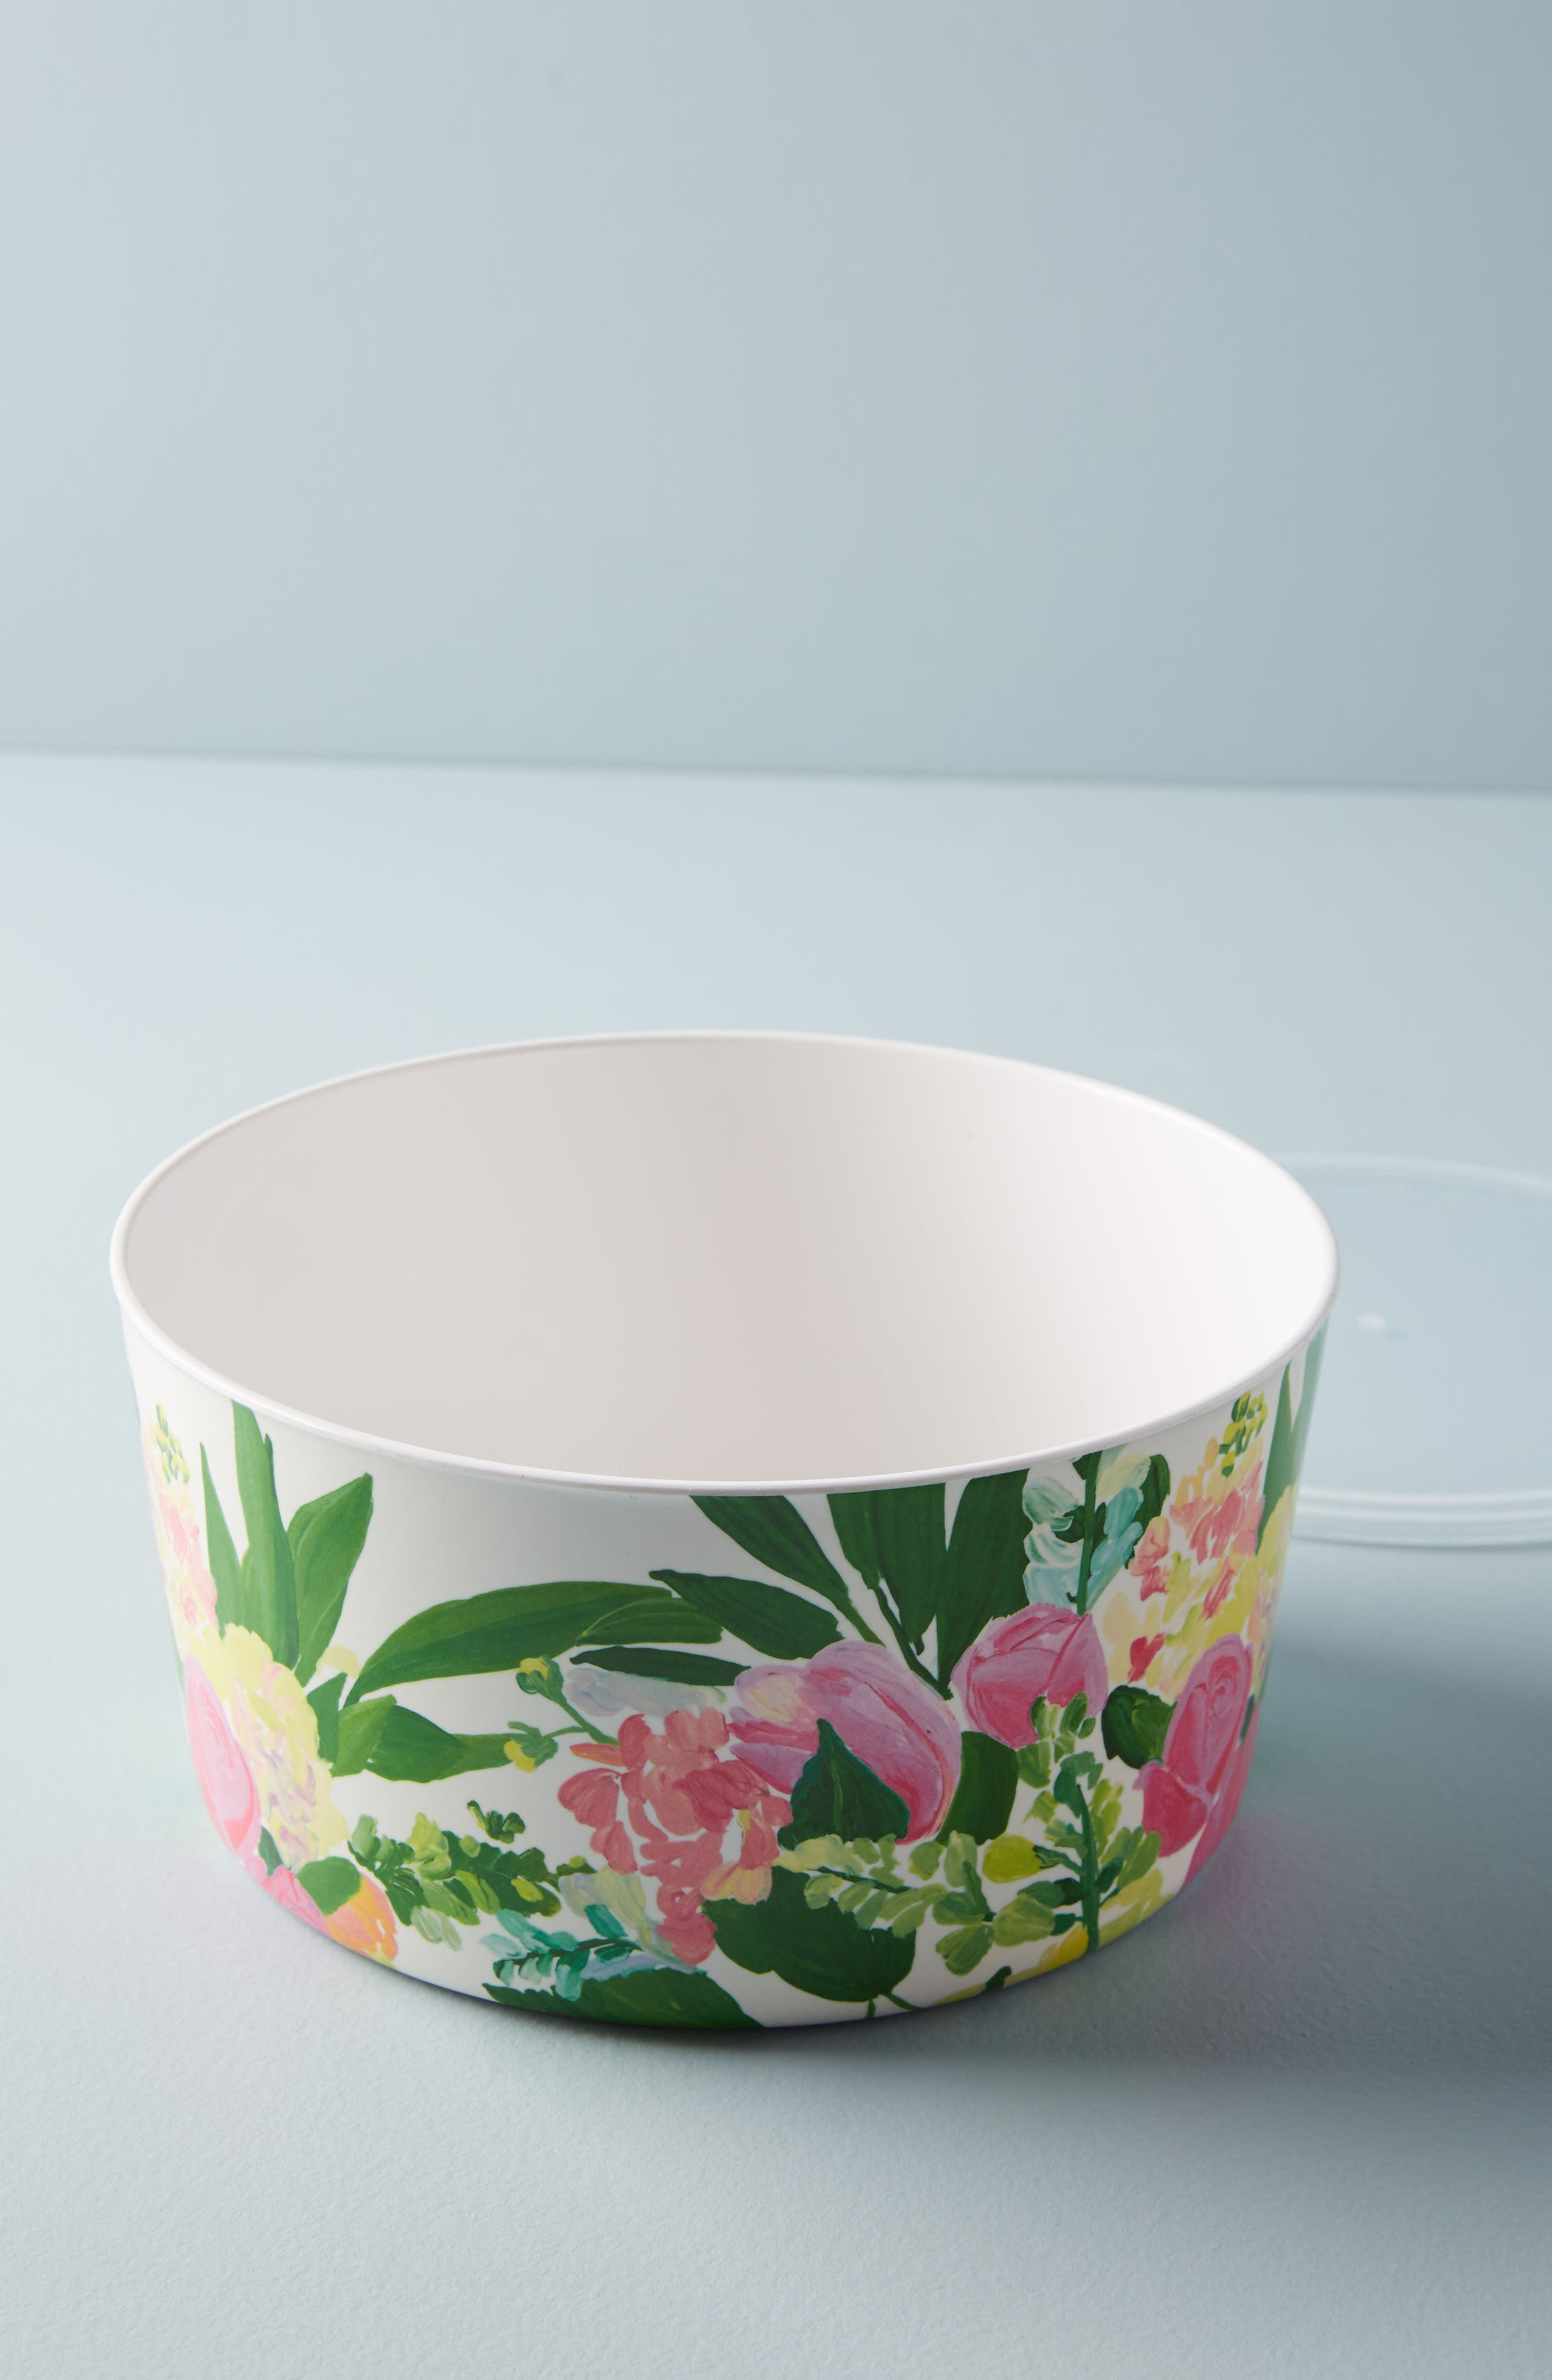 Anthropologie Paint + Petals Melamine Storage Bowl